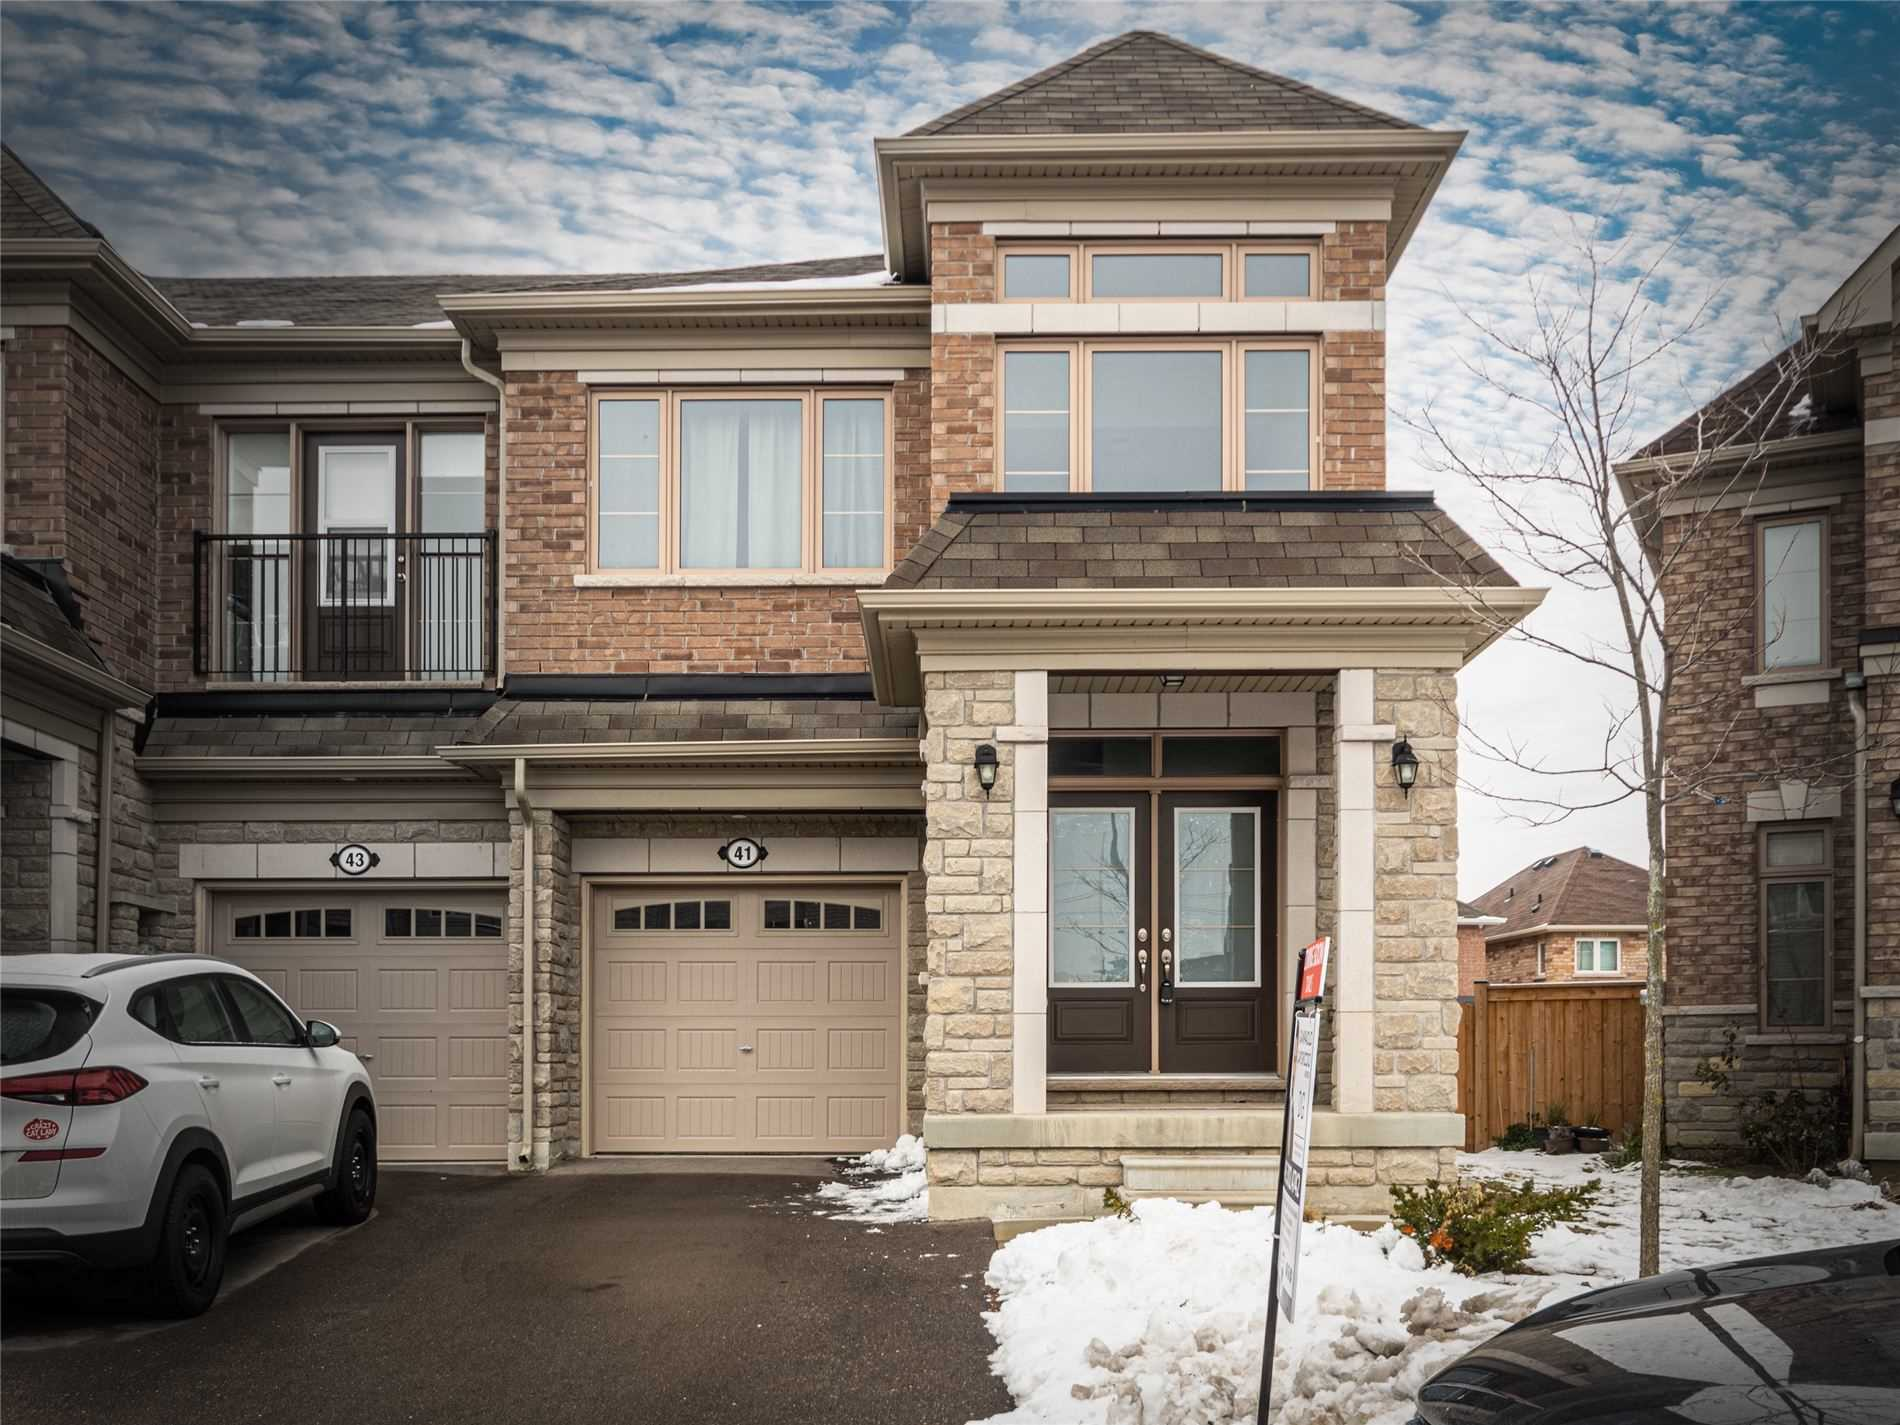 pictures of house for sale MLS: N5084904 located at 41 Vedette Way, Vaughan L4H4K2